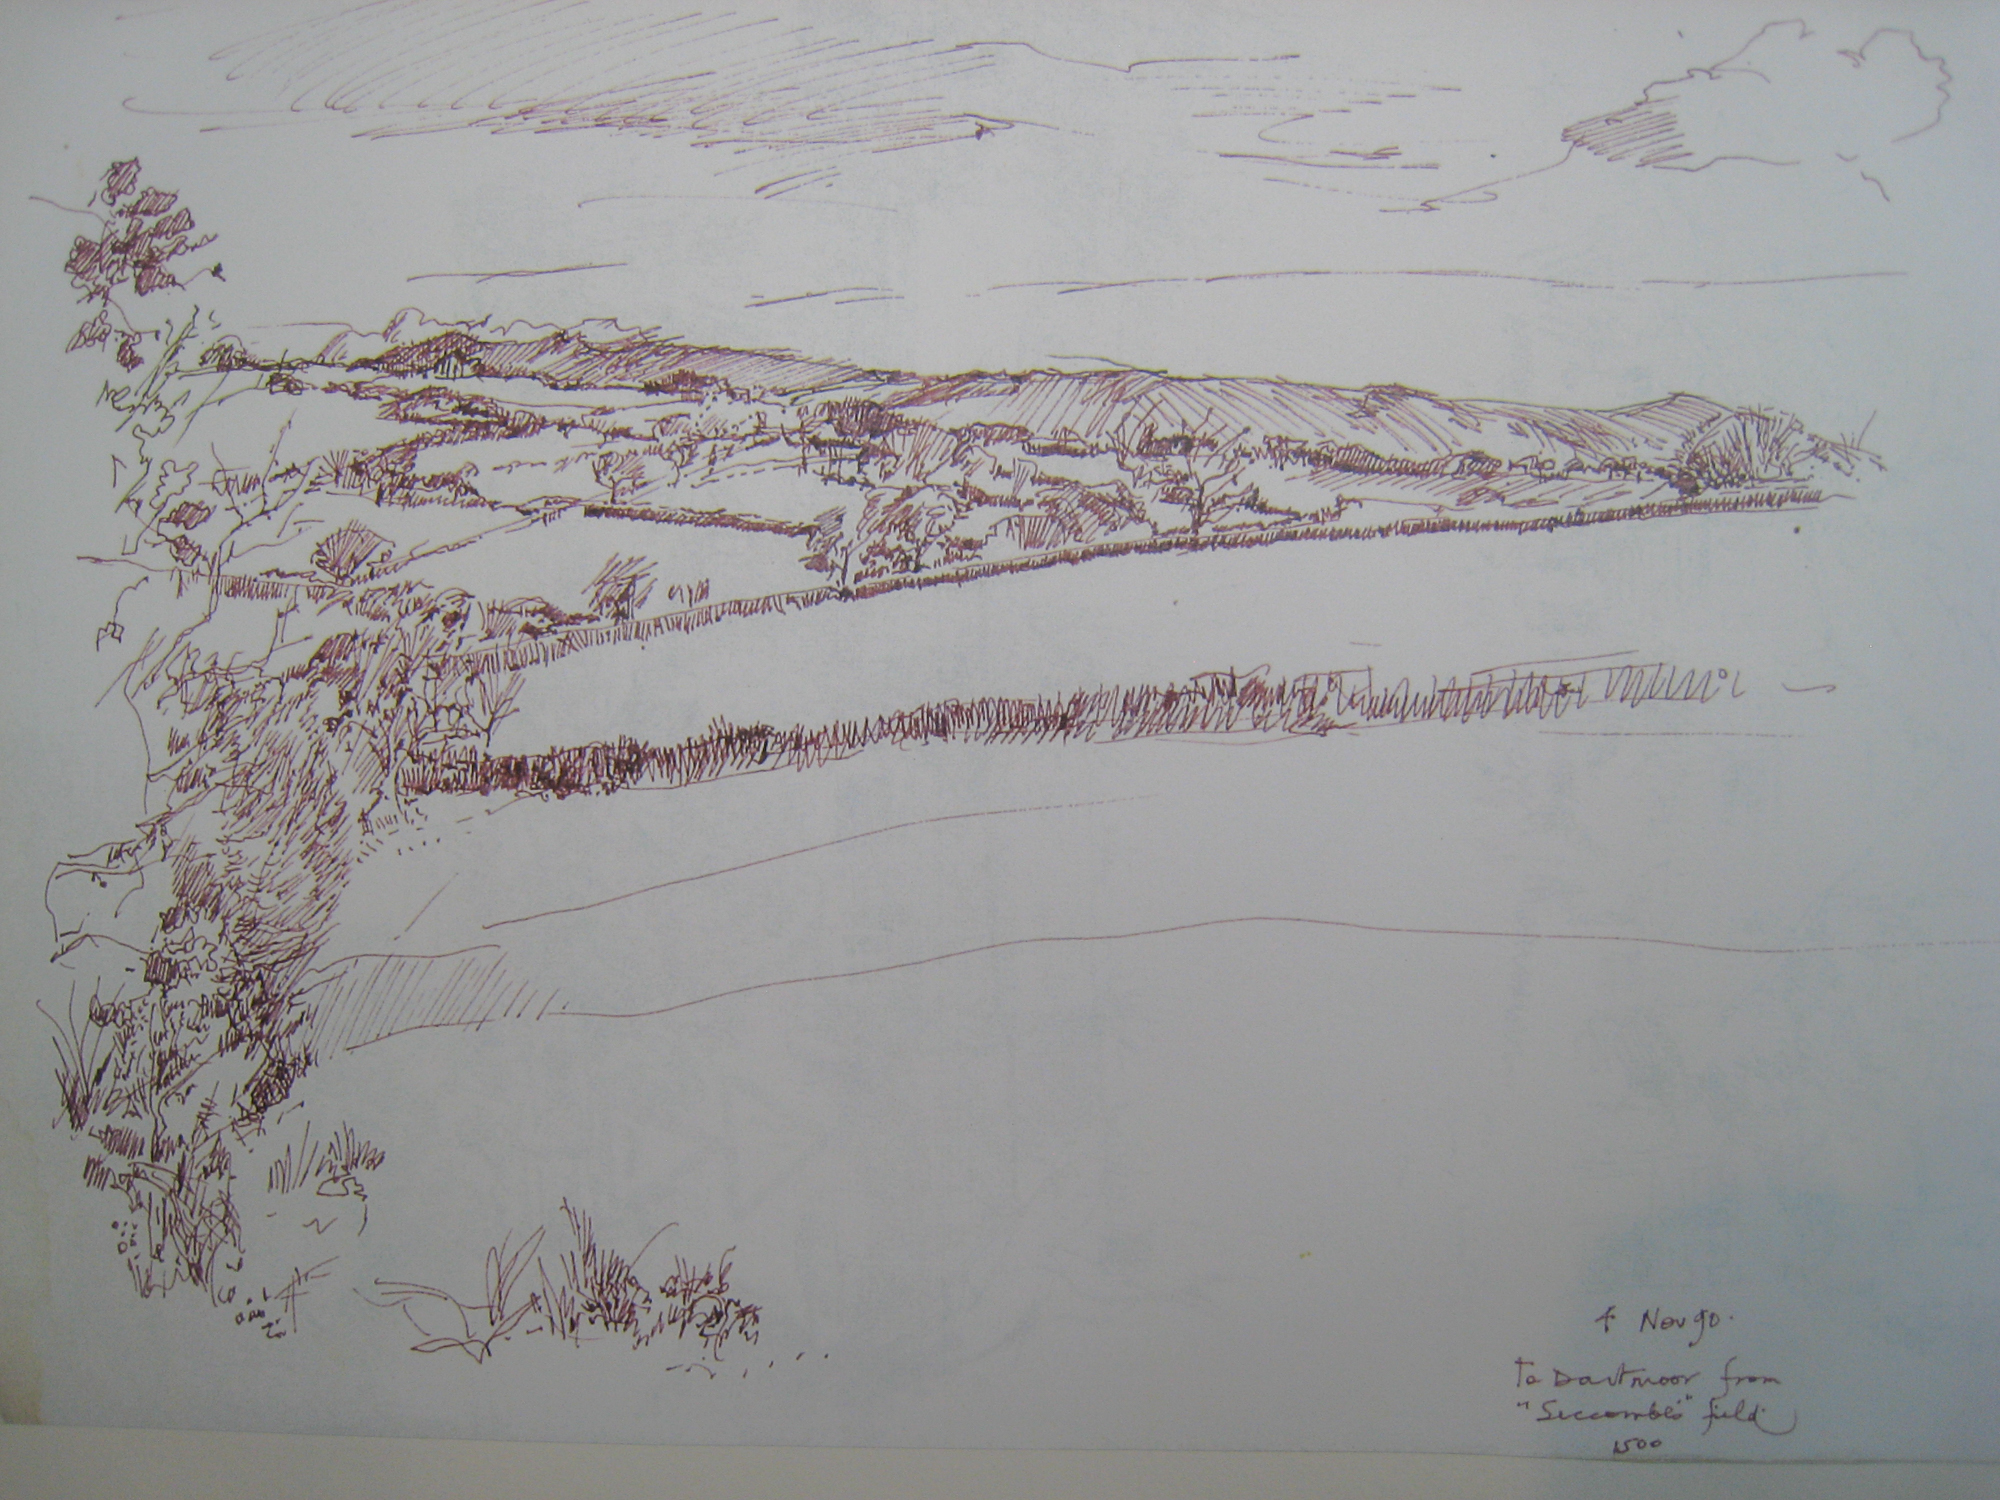 Germansweek landscapes, to Dartmoor from Seccombe's field area